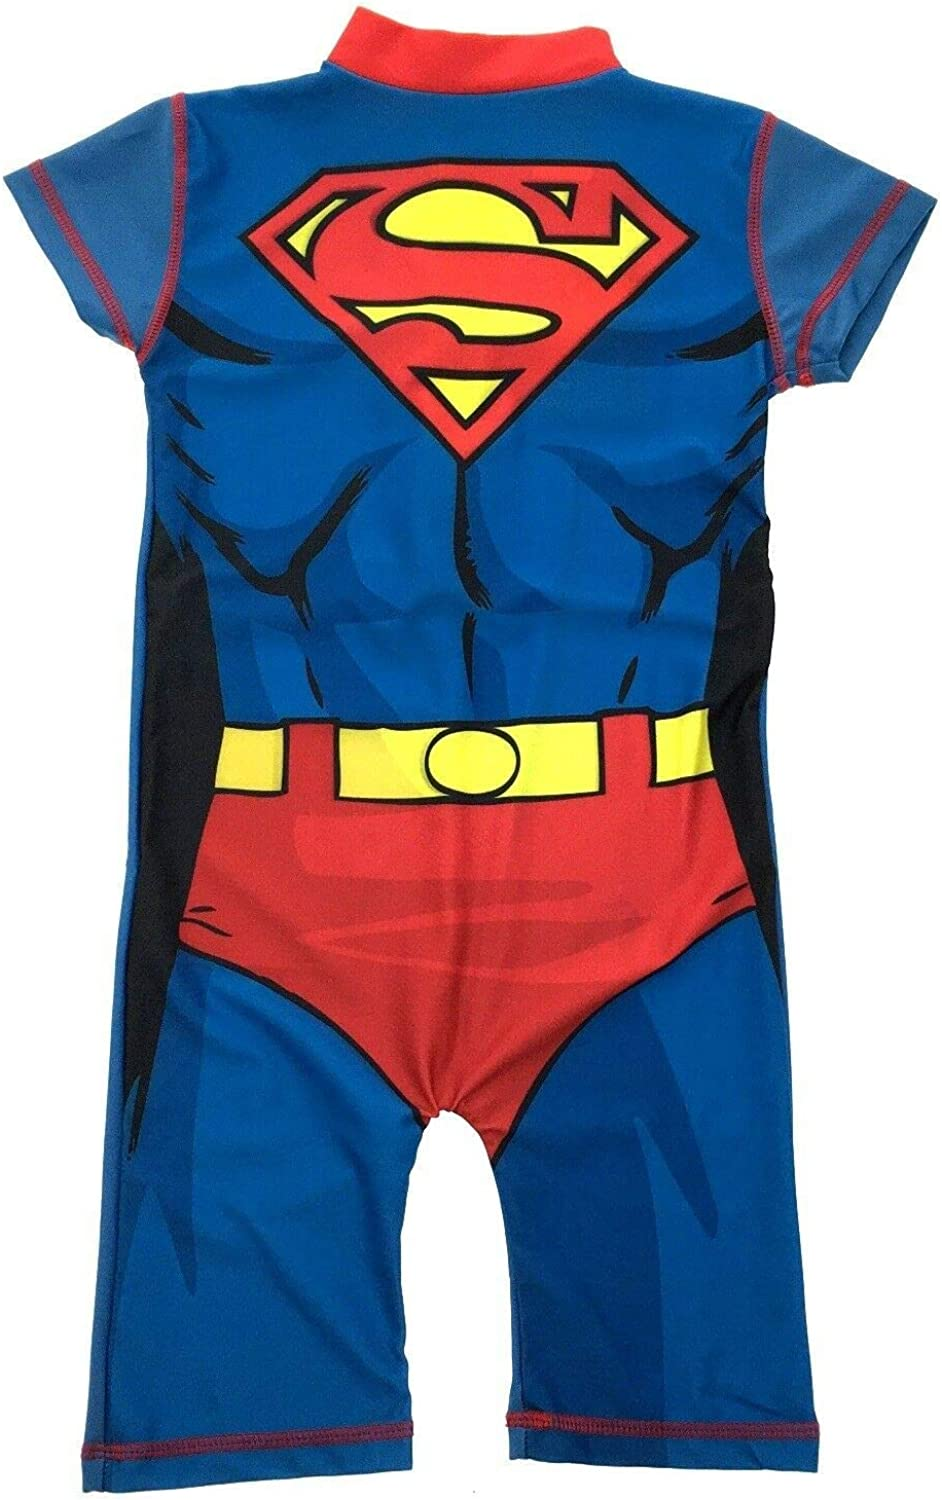 United Labels AG Baby Toddler Young Boys Licenced Superhero Sunsuit Swimsuit Sun Protection Fabric UPF Protection 50+ Ultra Violet Protection